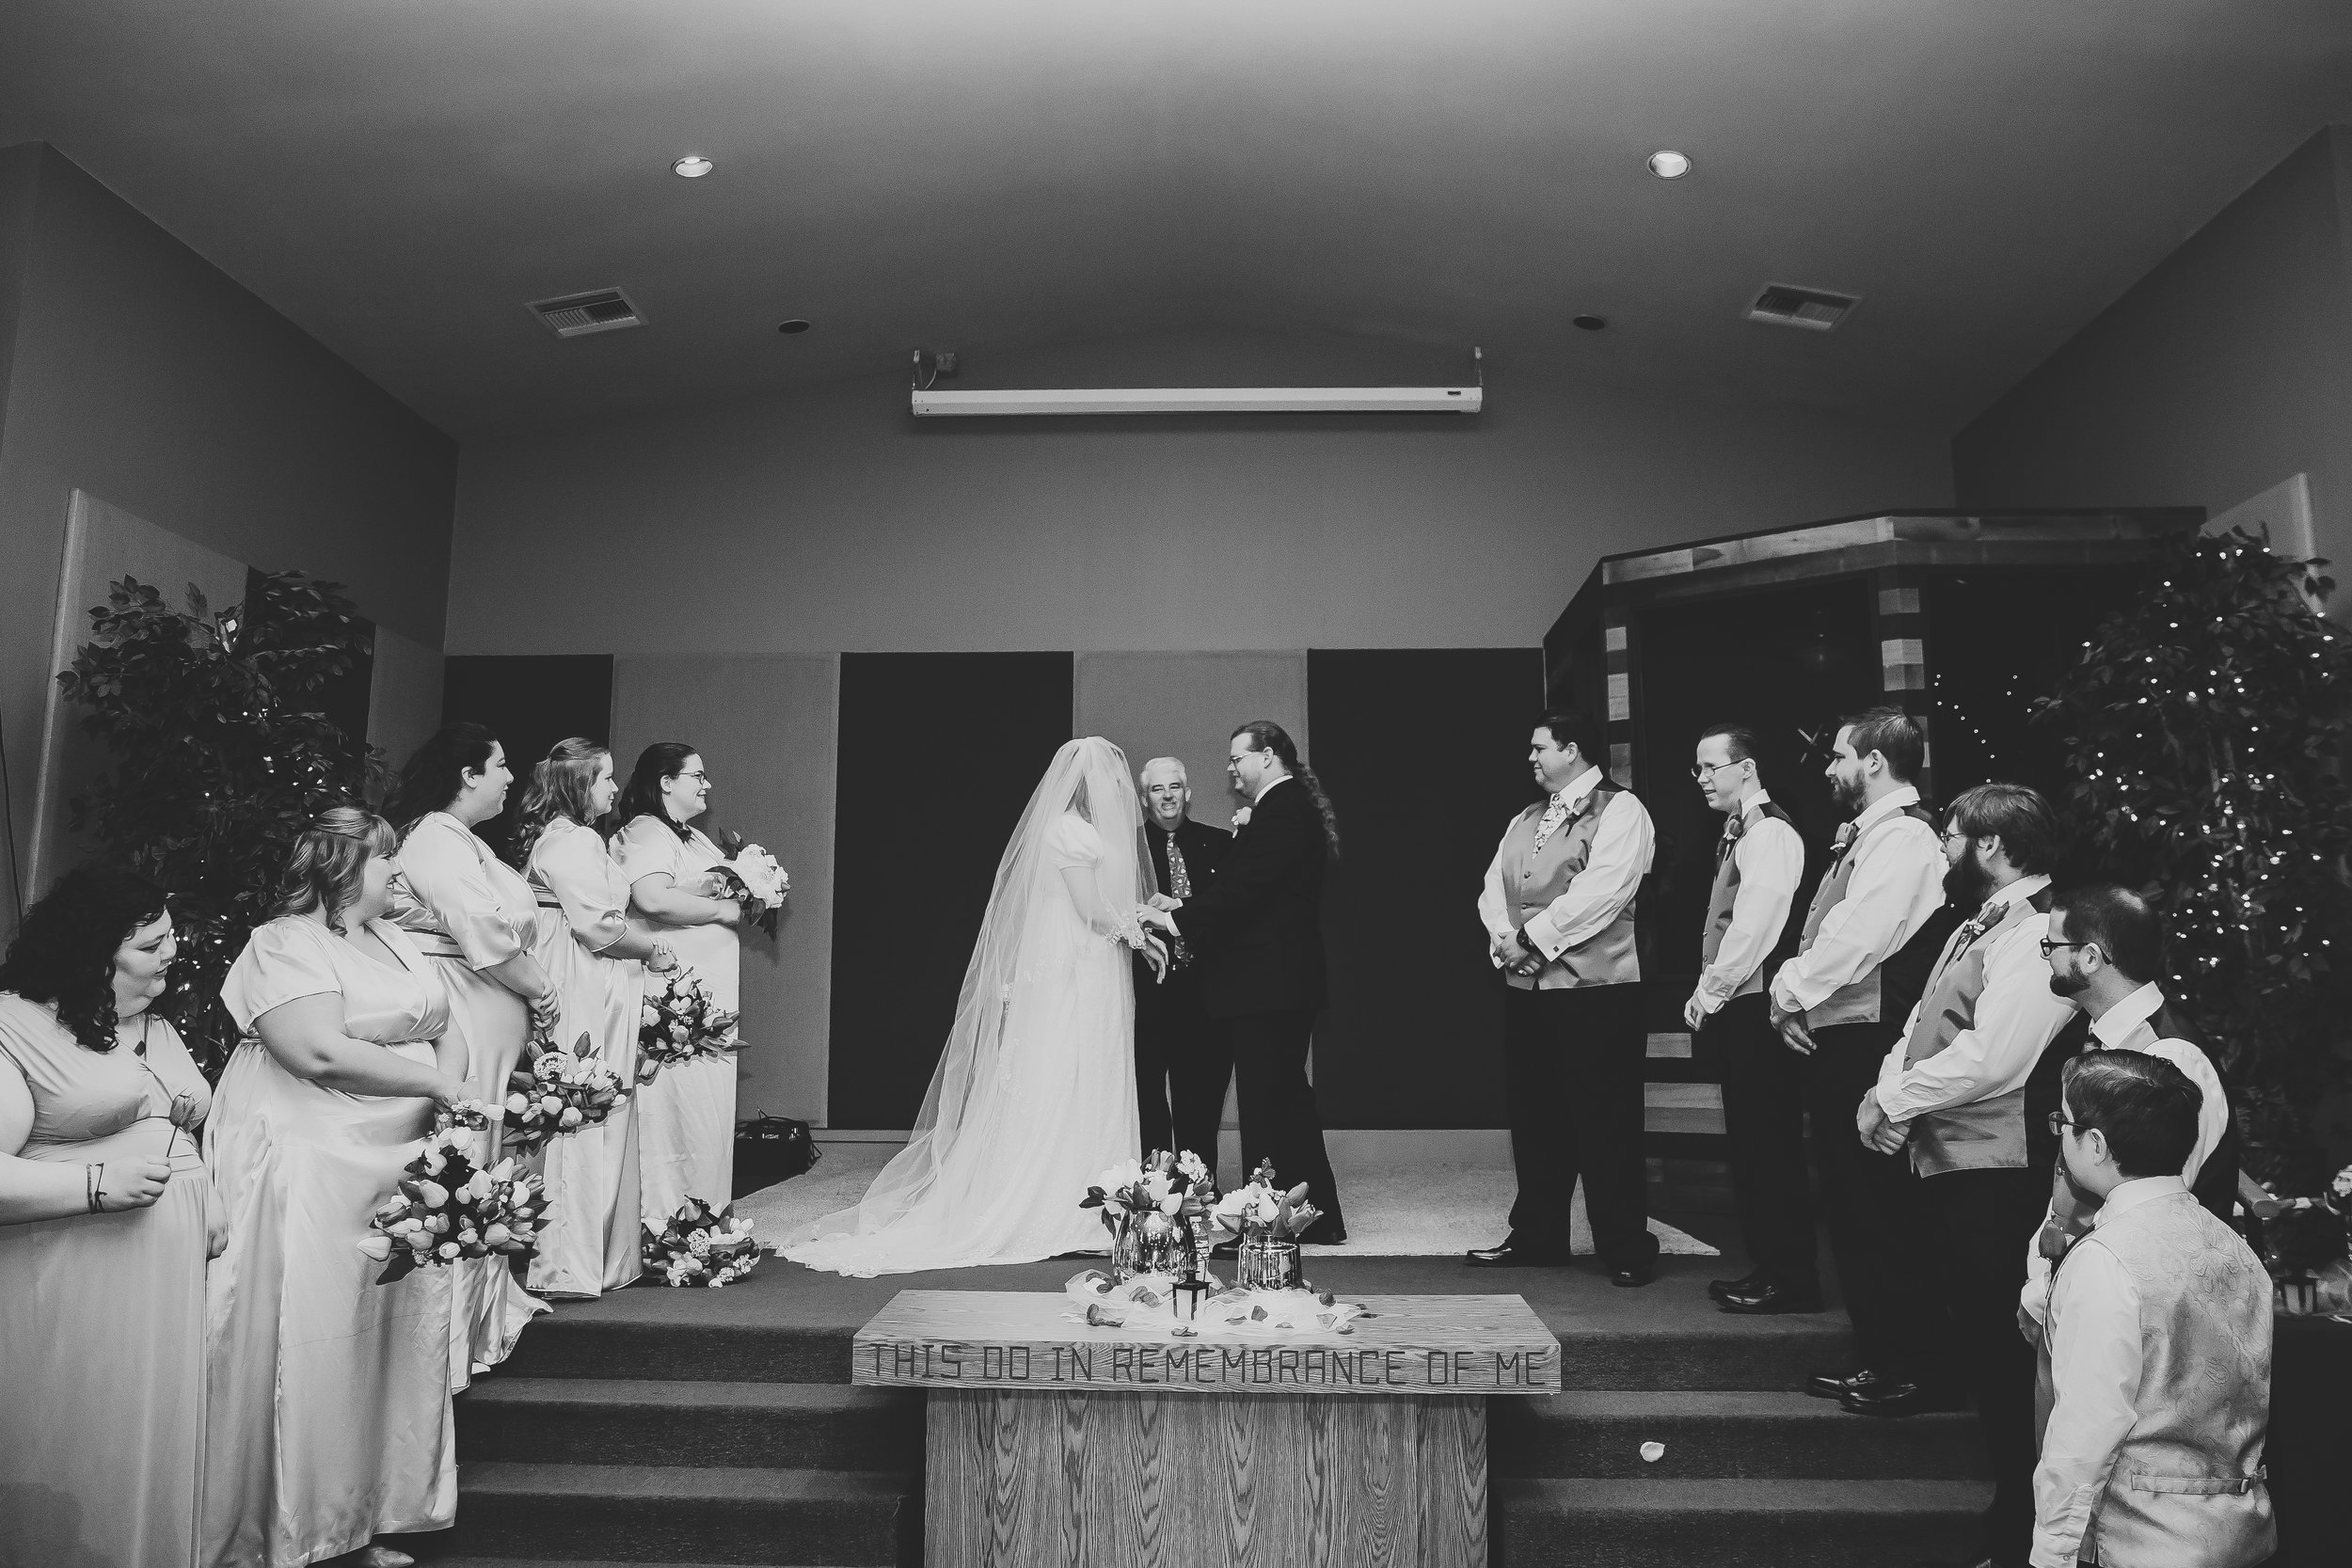 Endlessly Photography | Destination Wedding | De Vries | 01.20.2018